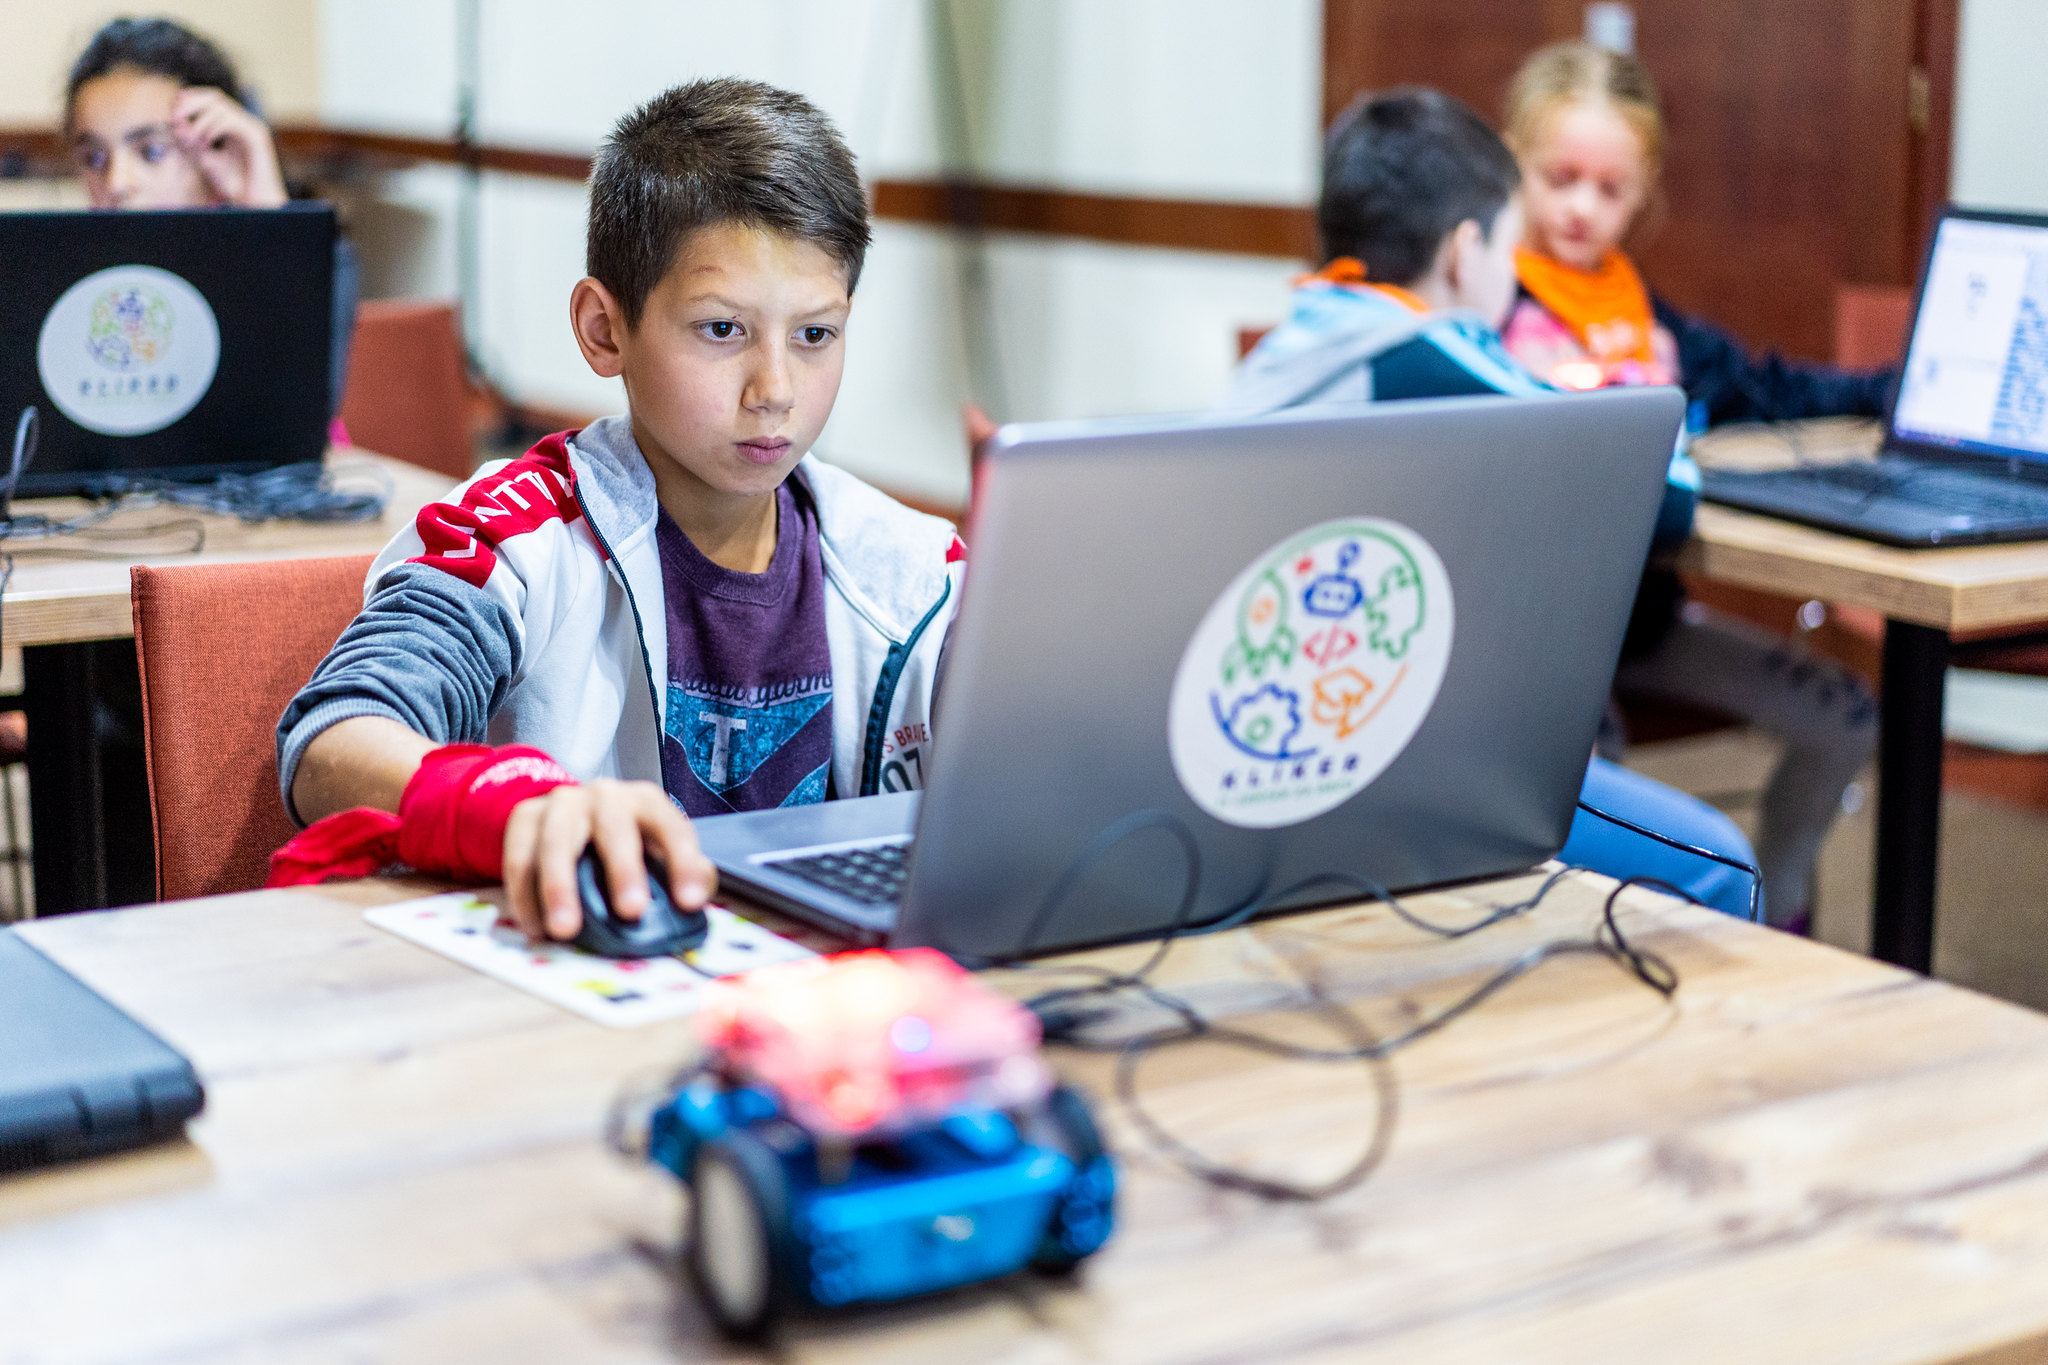 Virtual learning has become an unavoidable aspect of young learners' lives. It has changed the way parents prepare kids for school.